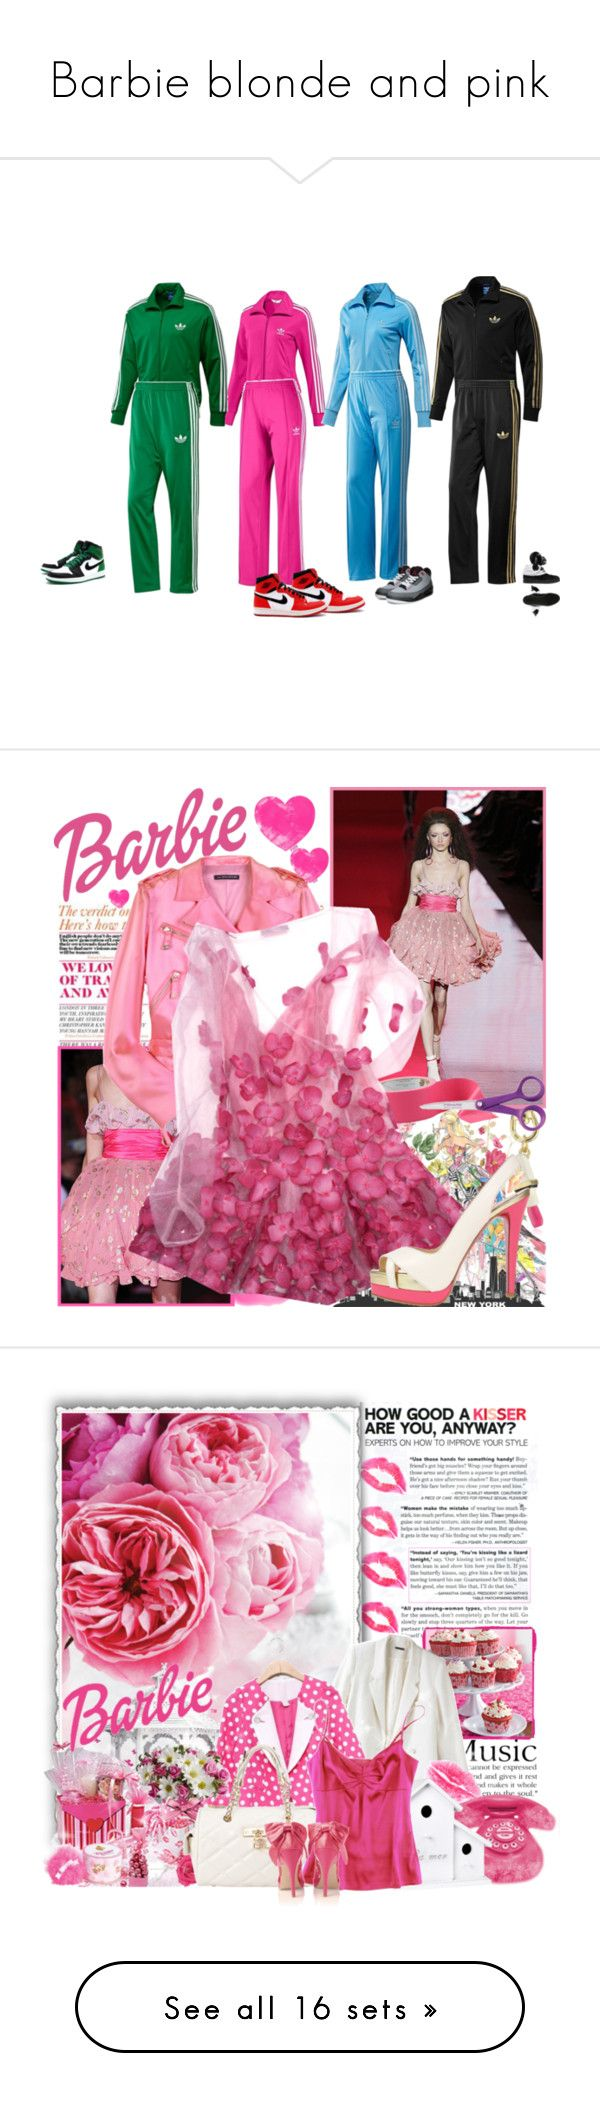 Barbie blonde and pink by saritadoll83 on Polyvore featuring polyvore art sport mode style Stila Noir Bulgari Crate and Barrel Anna Molinari Fiskars Christian Louboutin fashion clothing barbie runway model Arche Aime Shabby Chic JULIANNE Carvela Juicy Couture polka dots bows white handbag blazers floral telephone pink shoes pink top flowers gifts high heels powder white blazer Jason Wu Talula Yves Saint Laurent Pomegranate pink jean shorts tank top denim Paris Hilton PacificPlex Colucci…